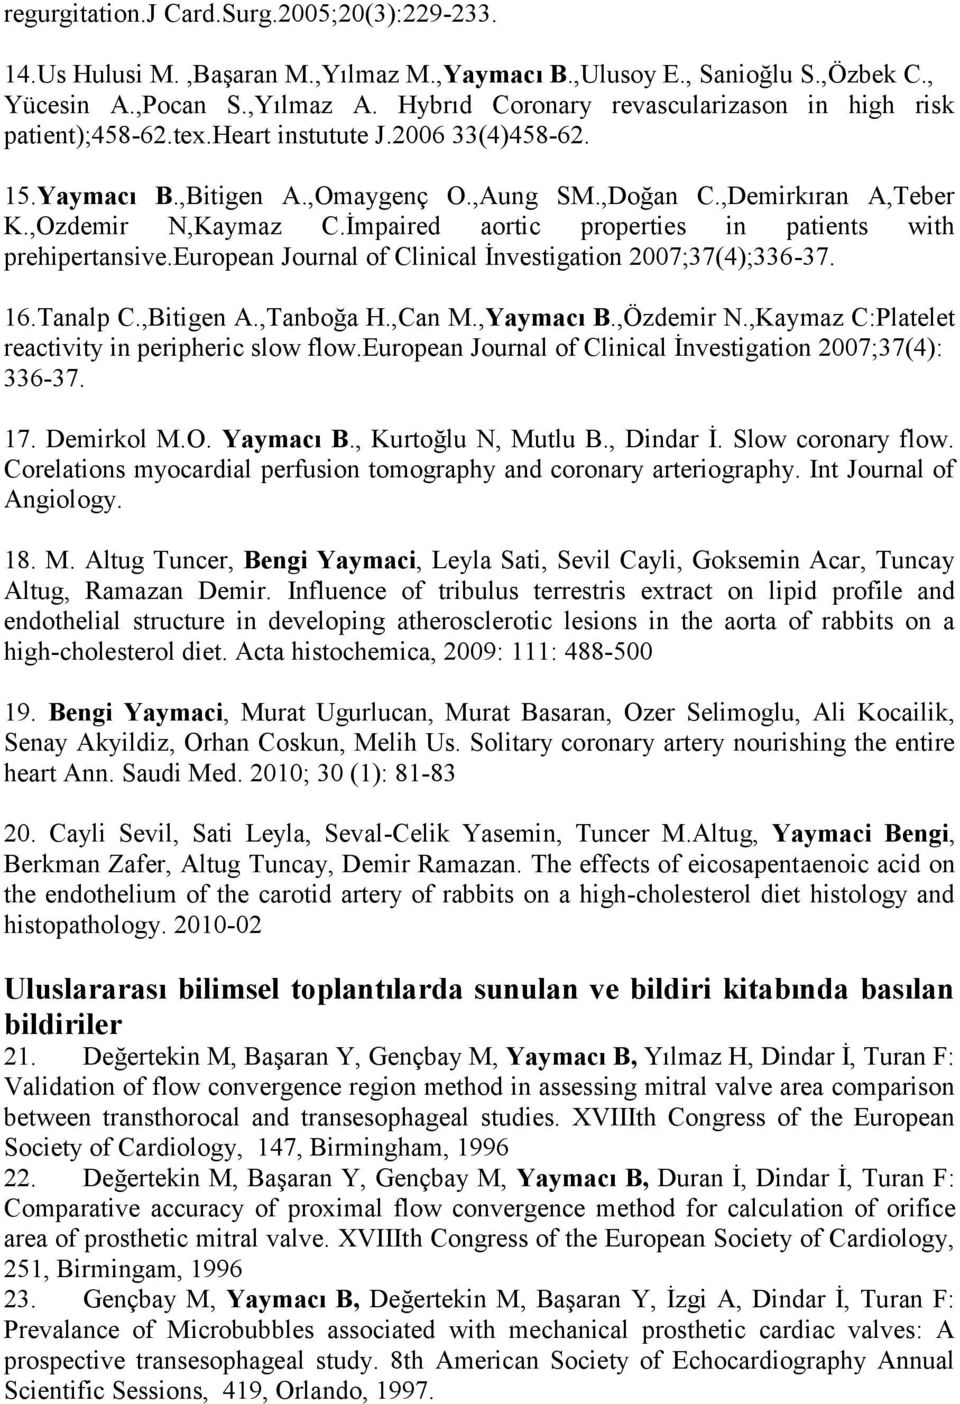 İmpaired aortic properties in patients with prehipertansive.european Journal of Clinical İnvestigation 2007;37(4);336-37. 16.Tanalp C.,Bitigen A.,Tanboğa H.,Can M.,Yaymacı B.,Özdemir N.